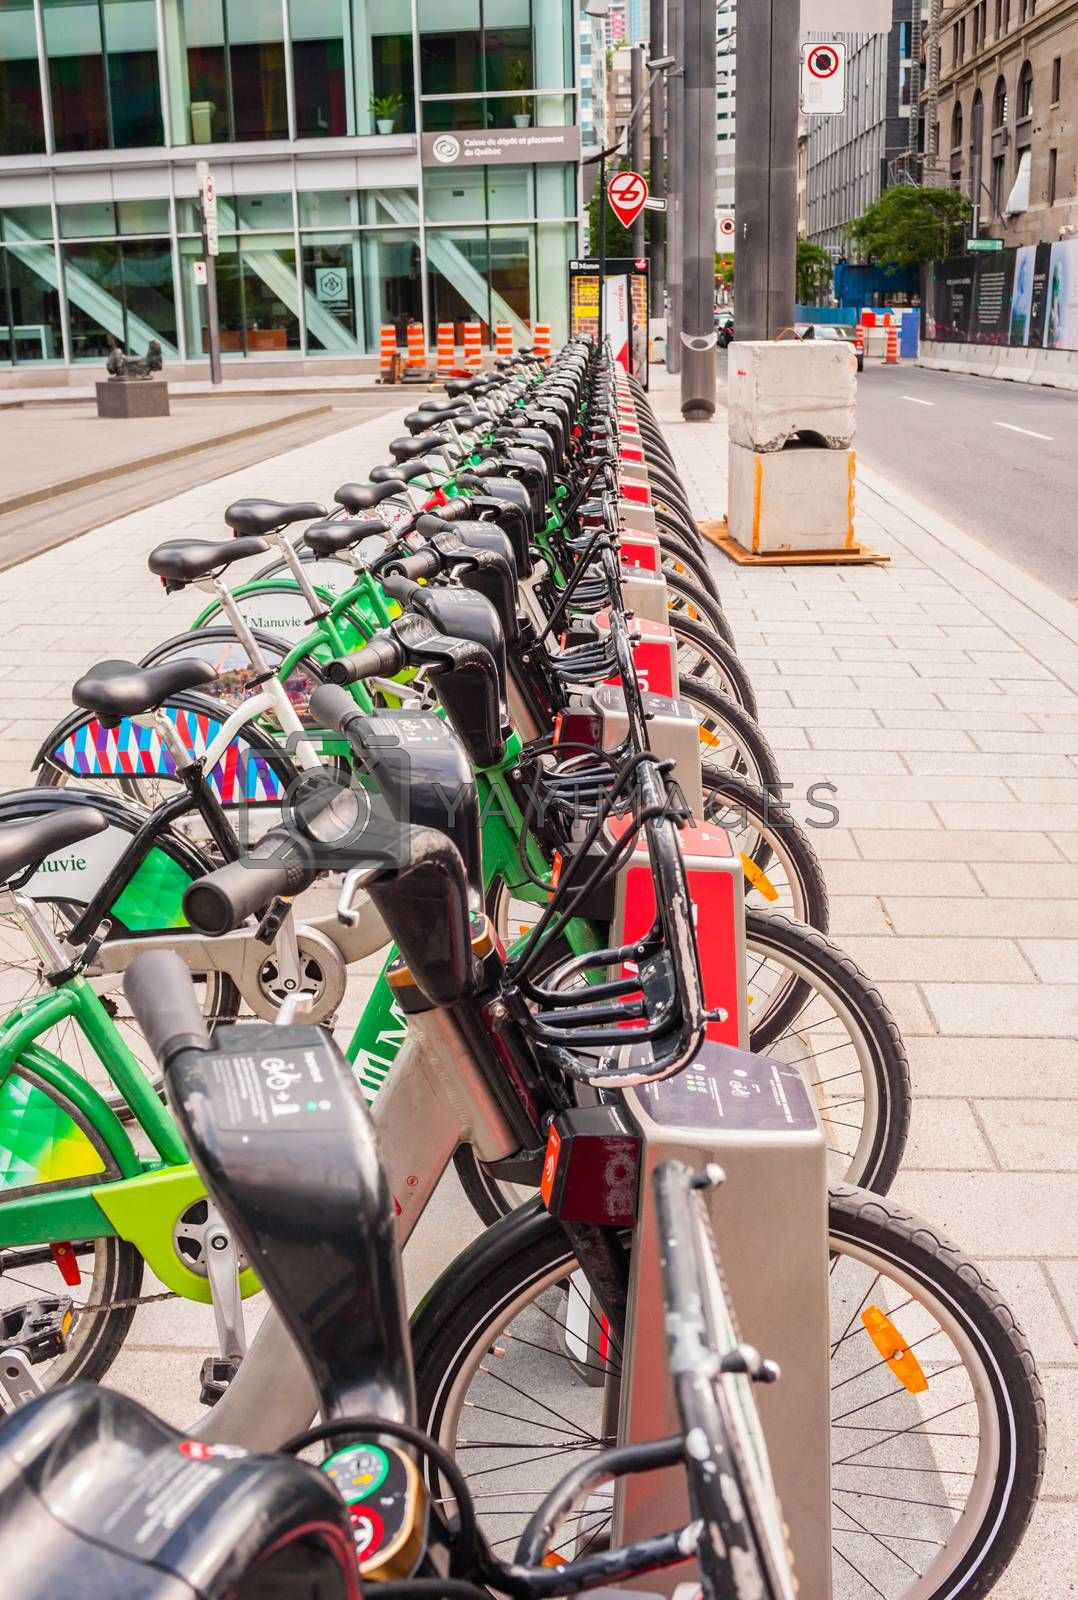 MONTREAL, CANADA - JUNE 17, 2018: The city's Bixi rental bicycles are lined up at one of the many automated docking stations downtown.